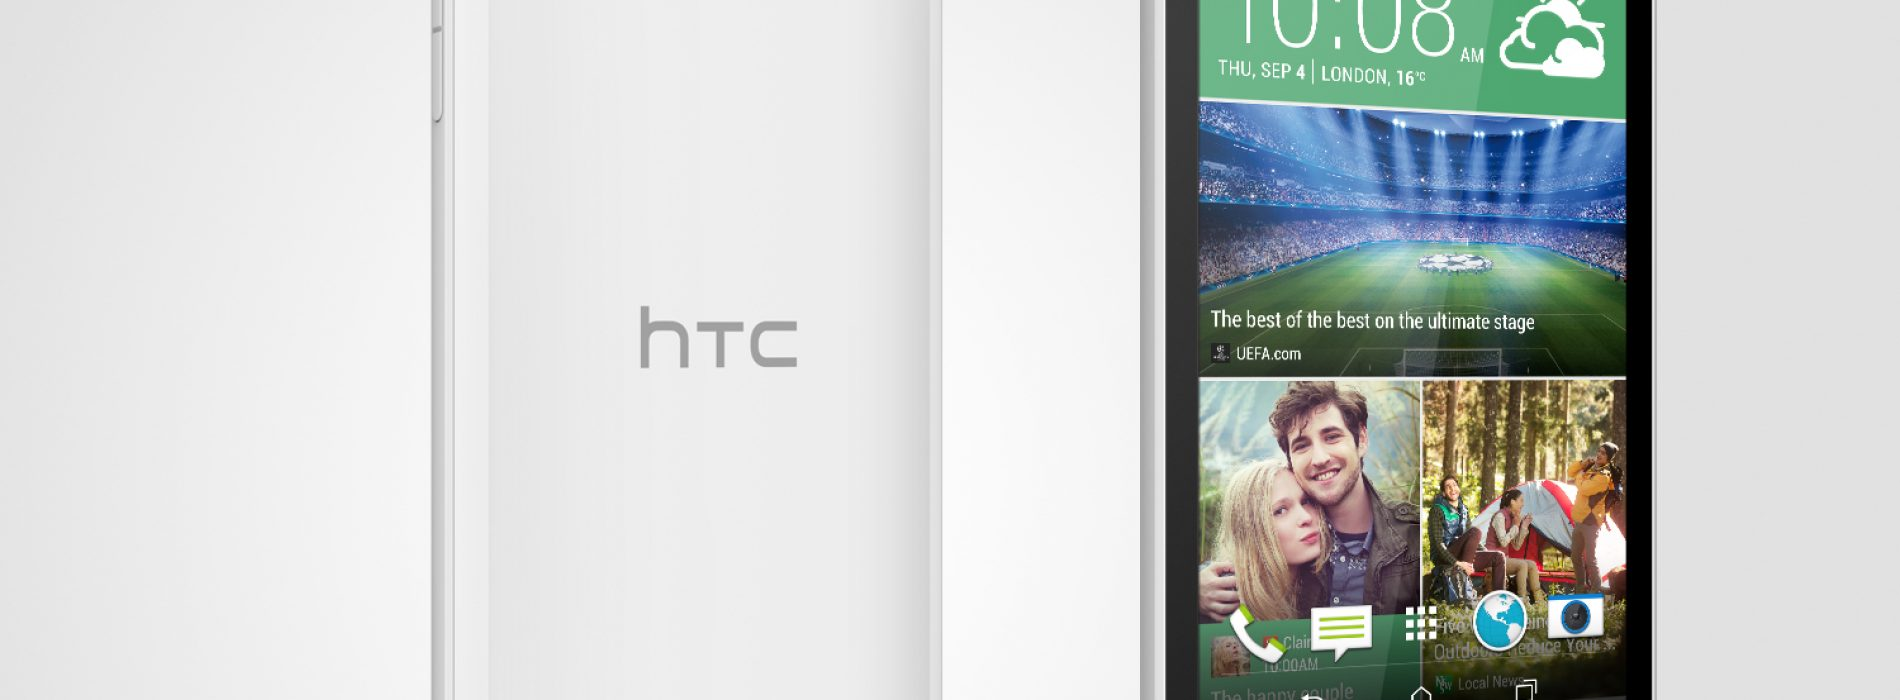 HTC Desire 510: The first Android phone with 64-bit Qualcomm Snapdragon 410 chipset